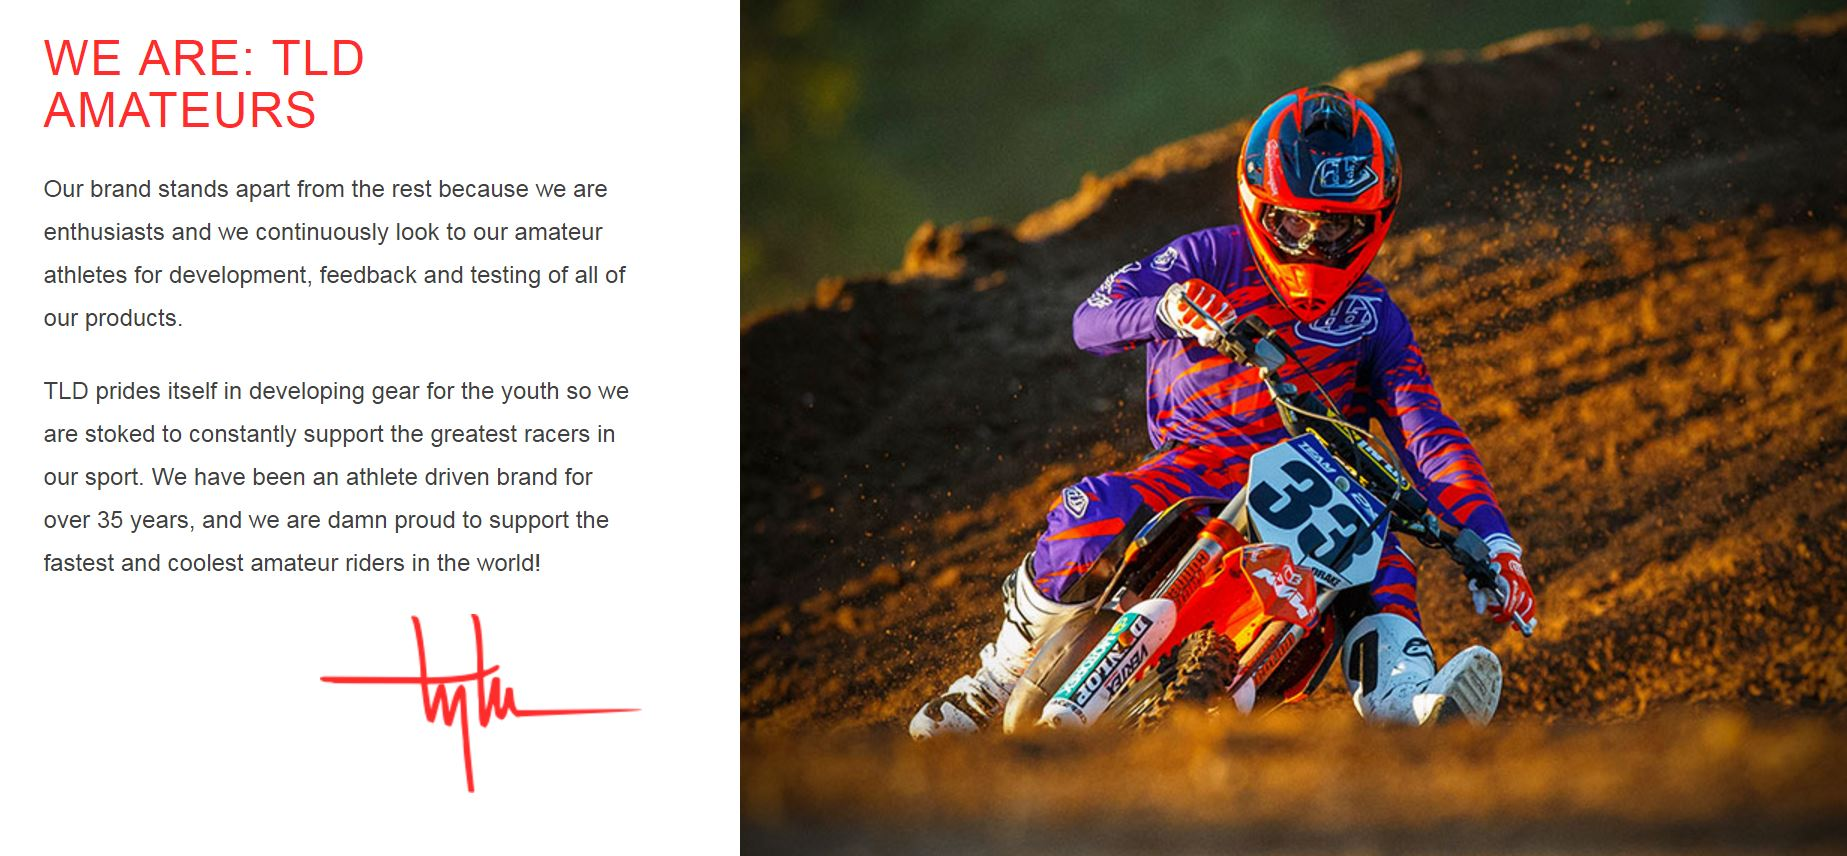 Troy Lee Designs Amateur Motorcycle MX Athletes Sponsored Team 2016